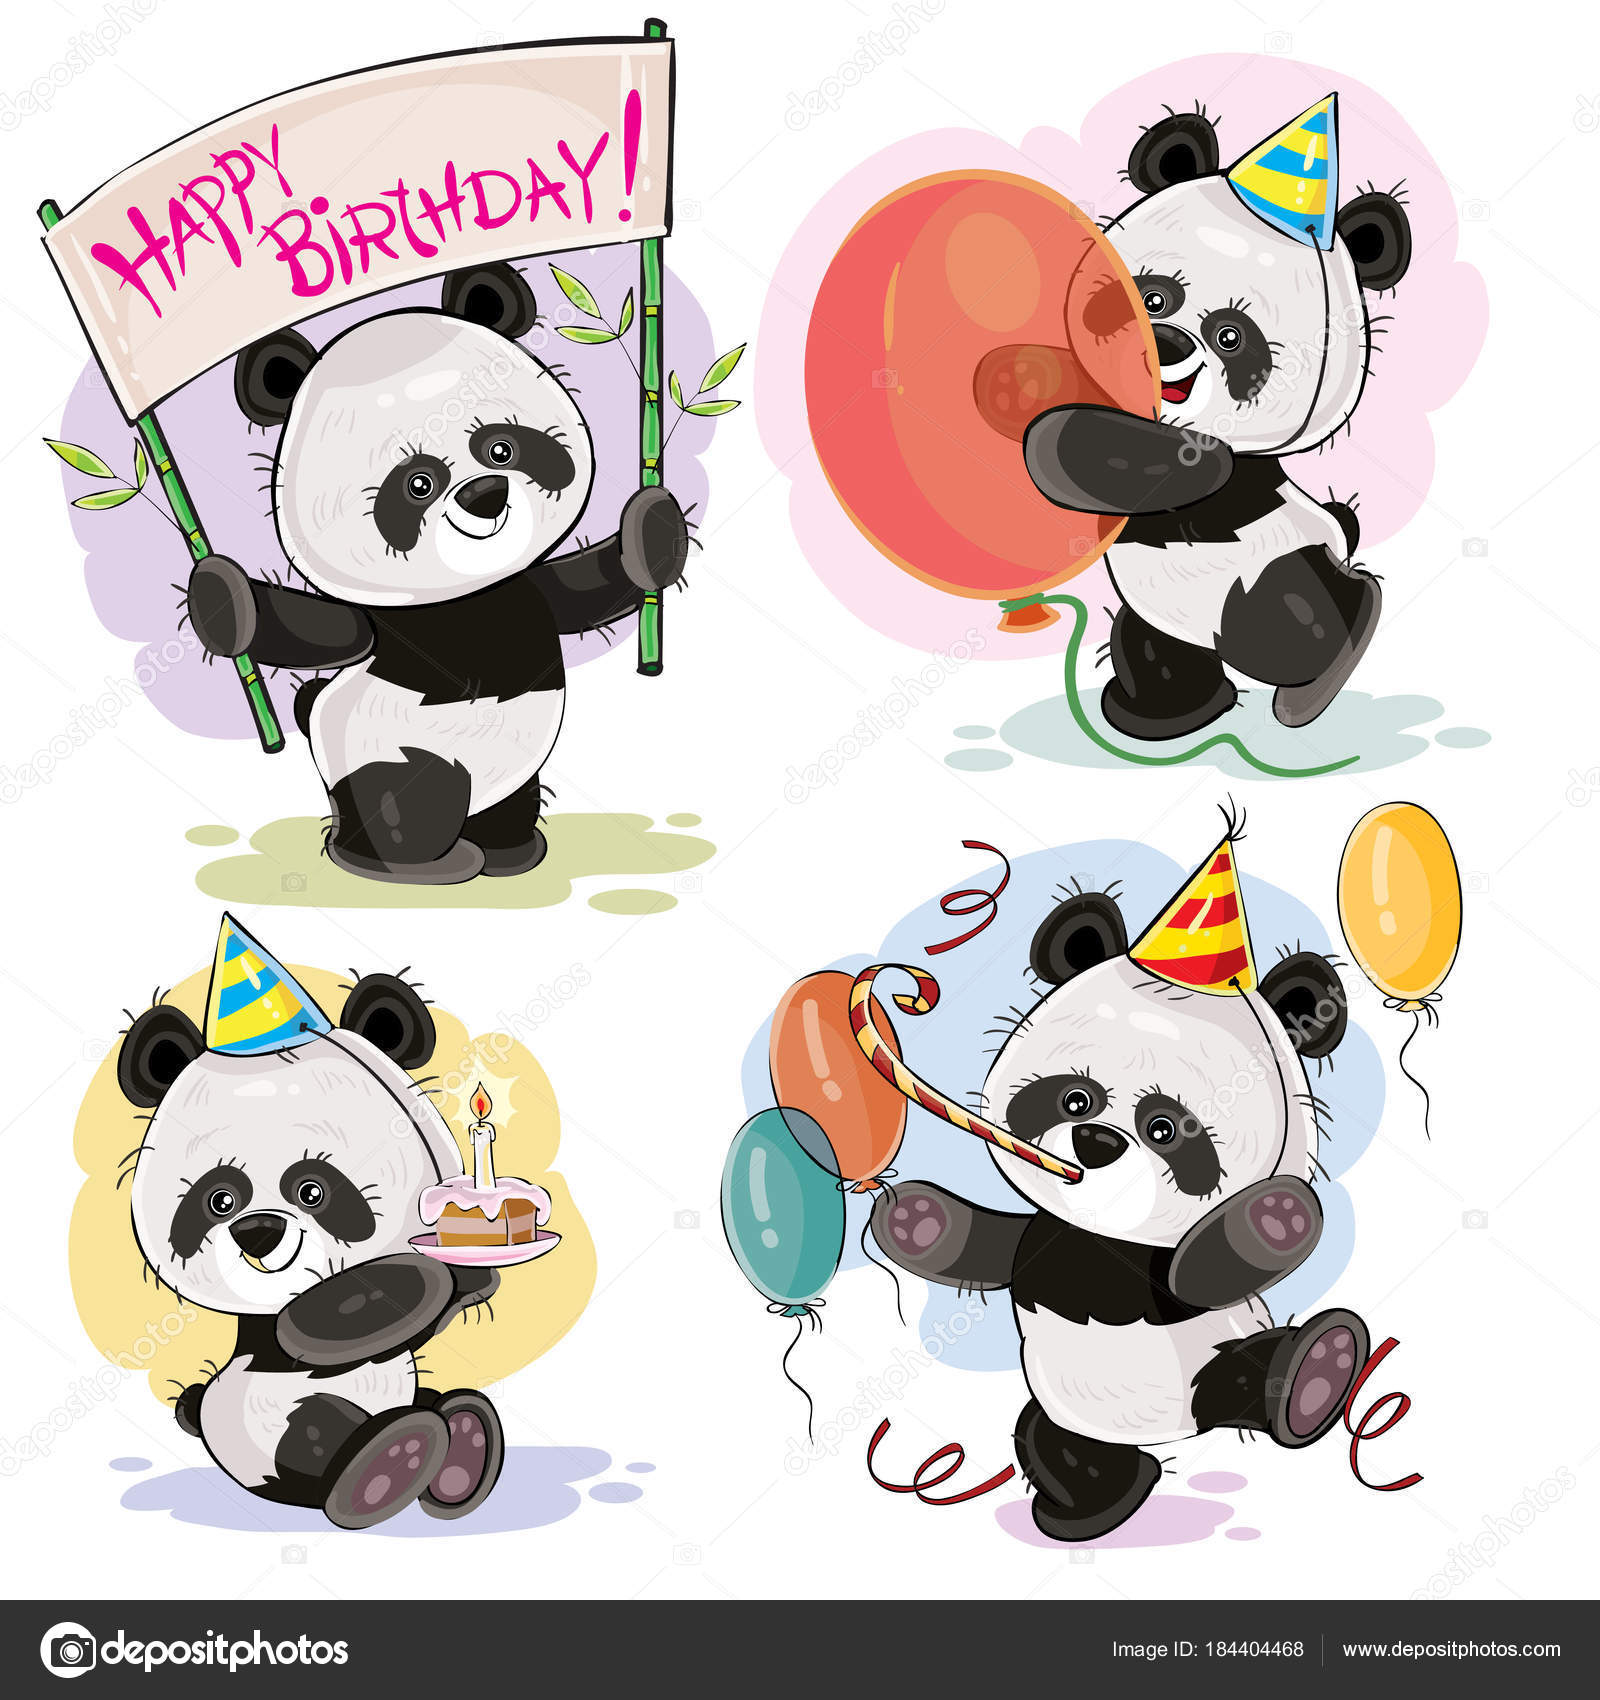 happy birthday panda clipart ; depositphotos_184404468-stock-illustration-happy-birthday-vector-set-with